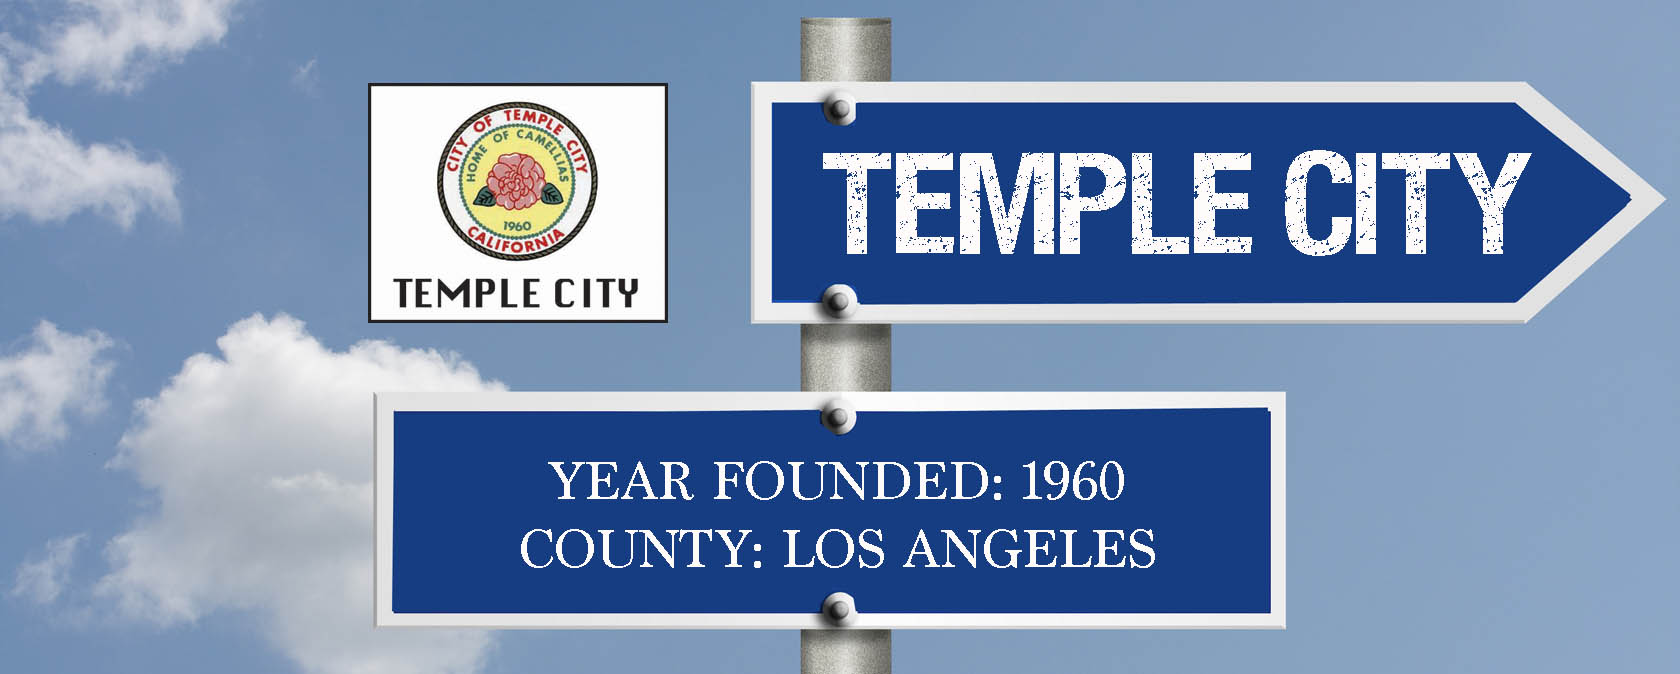 city sign-TEMPLE CITY